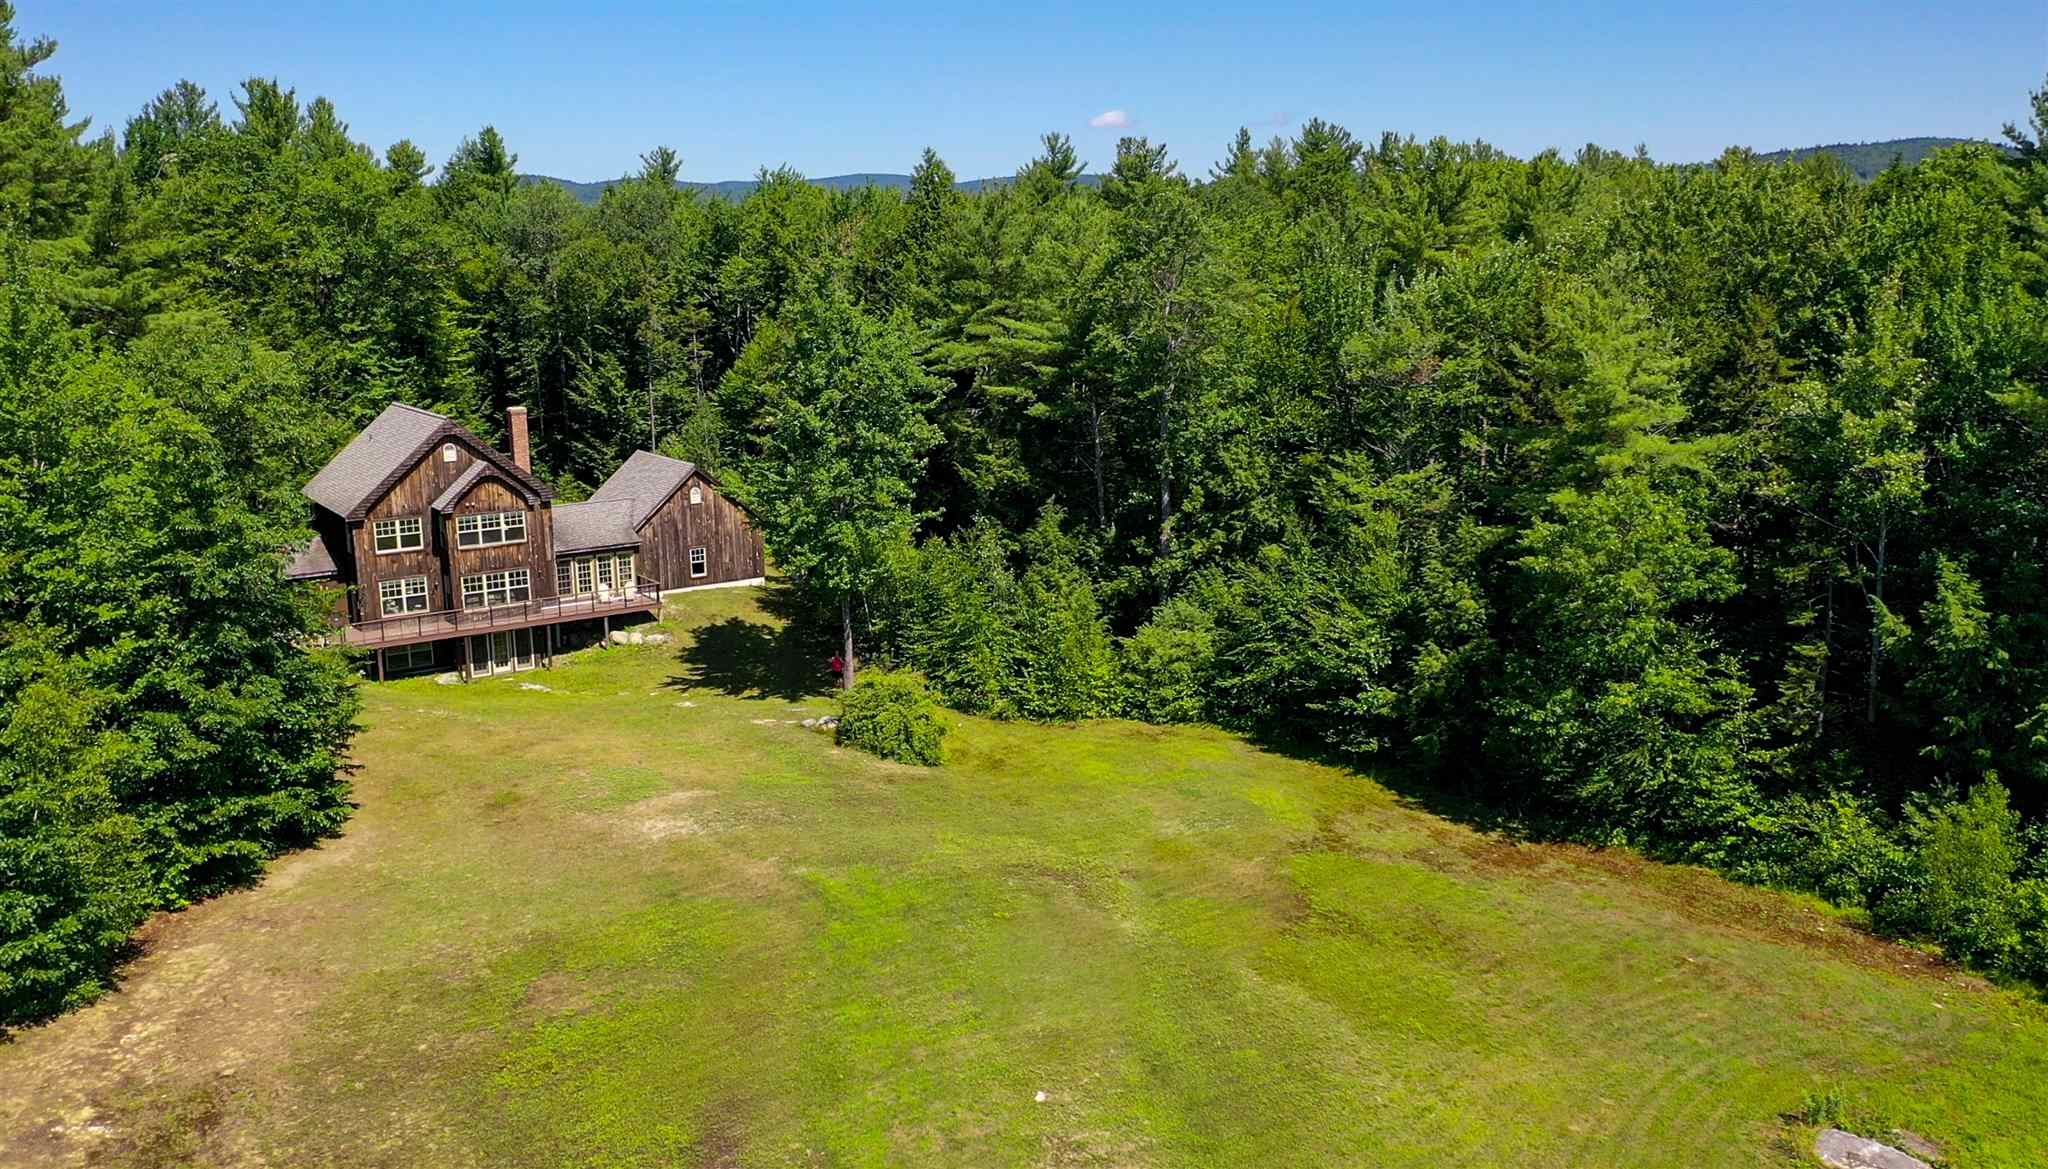 MLS 4817676: 217 Blueberry Lane, New London NH